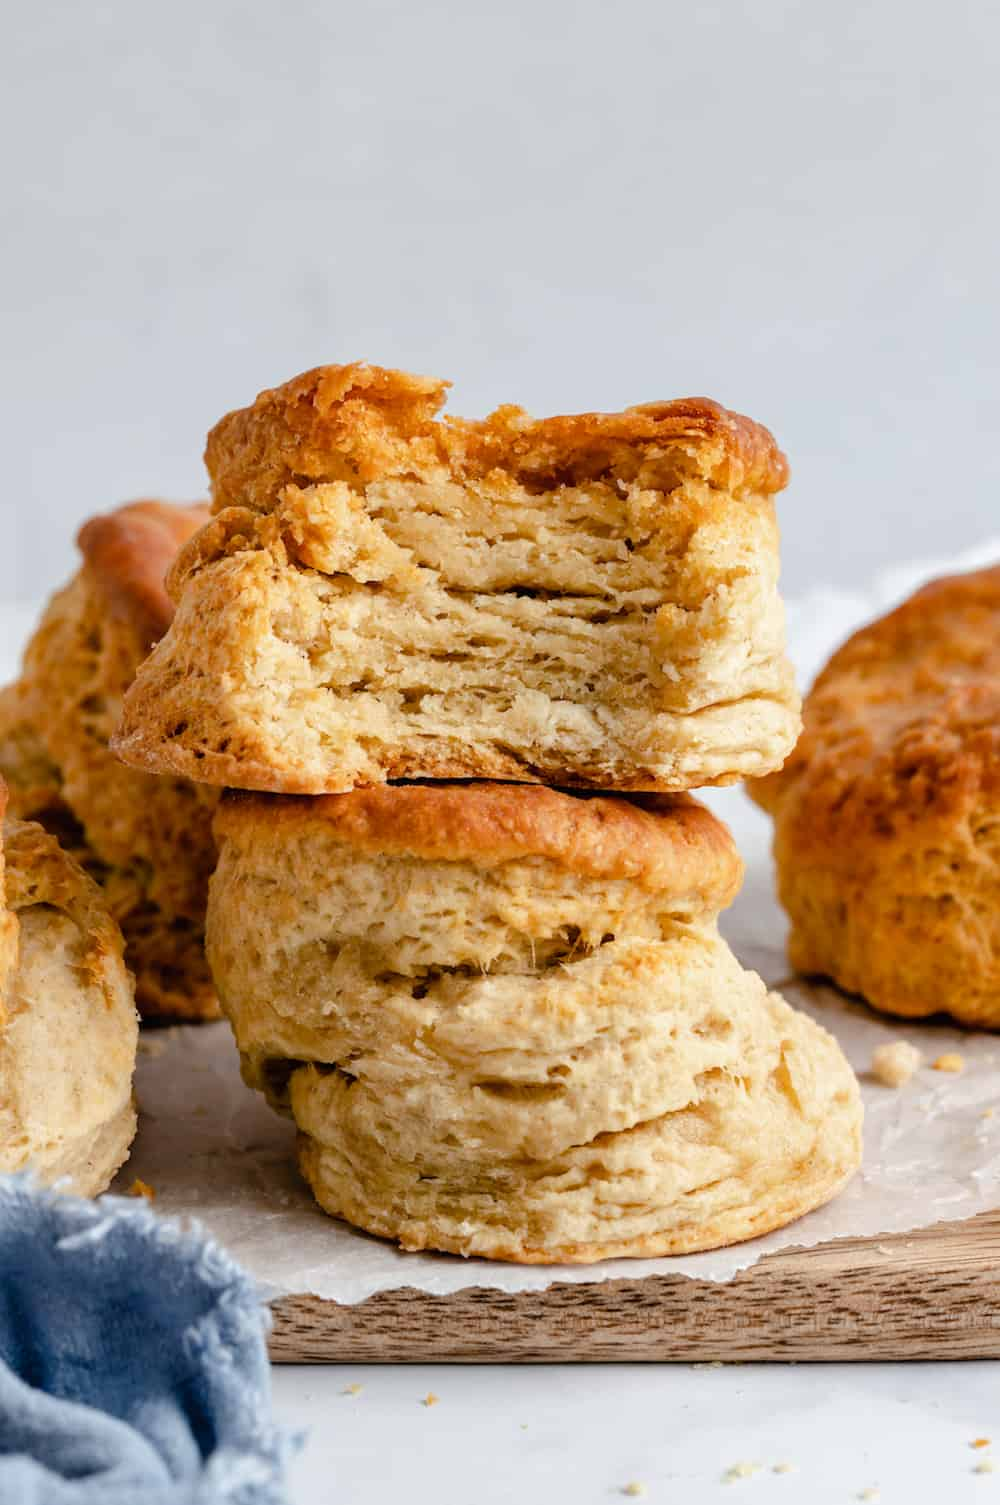 A Stack of Two Fluffy Vegan Biscuits on Top of a Slab of Wood